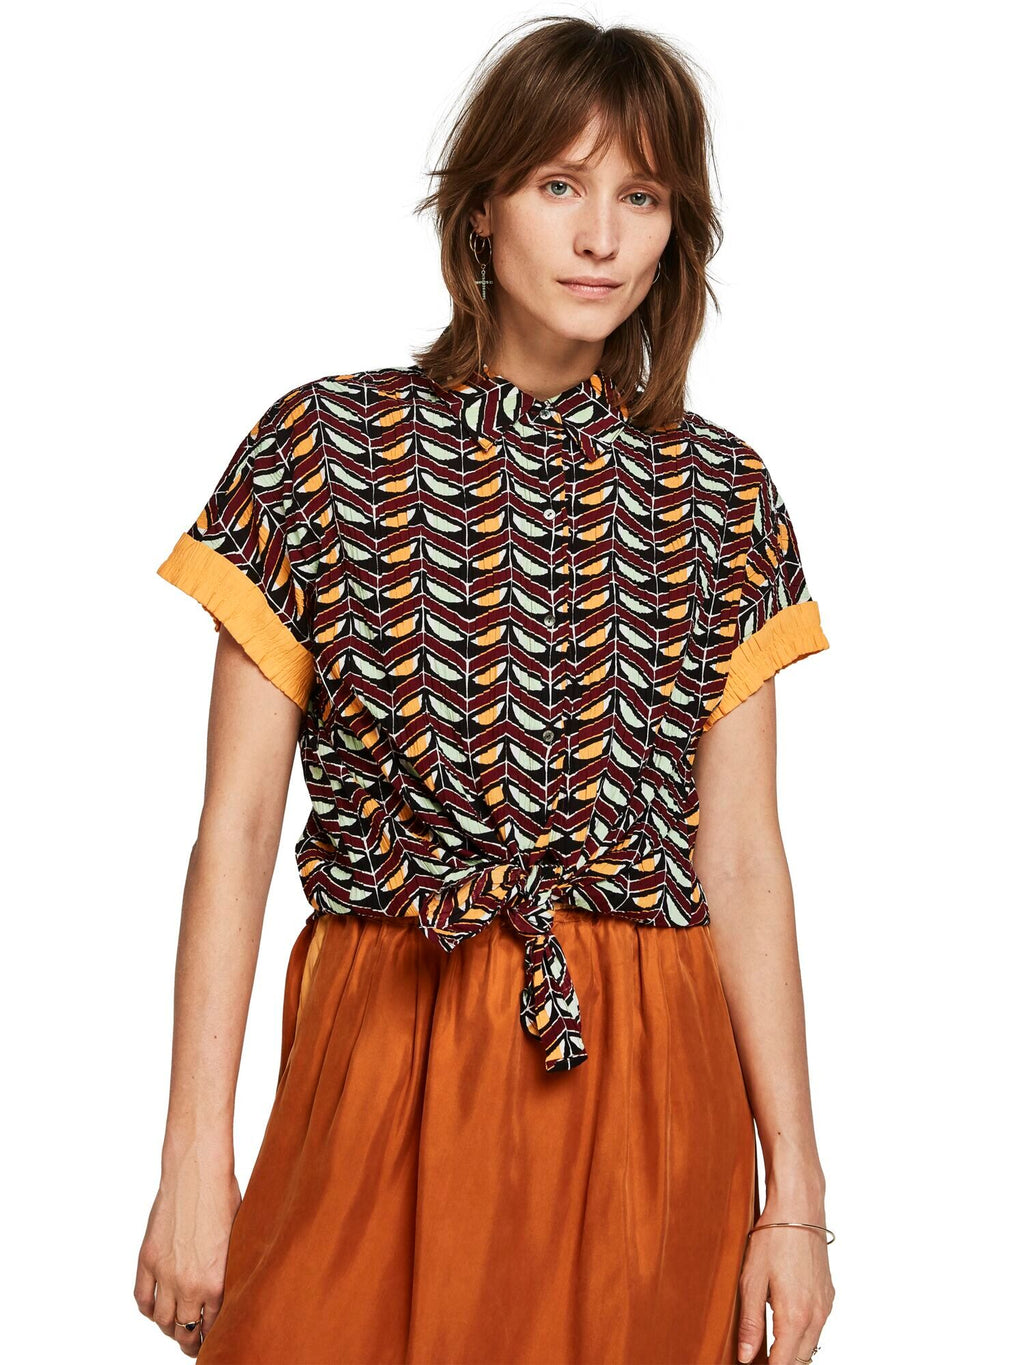 SCOTCH AND SODA - Smocked Shirt online at PAYA boutique